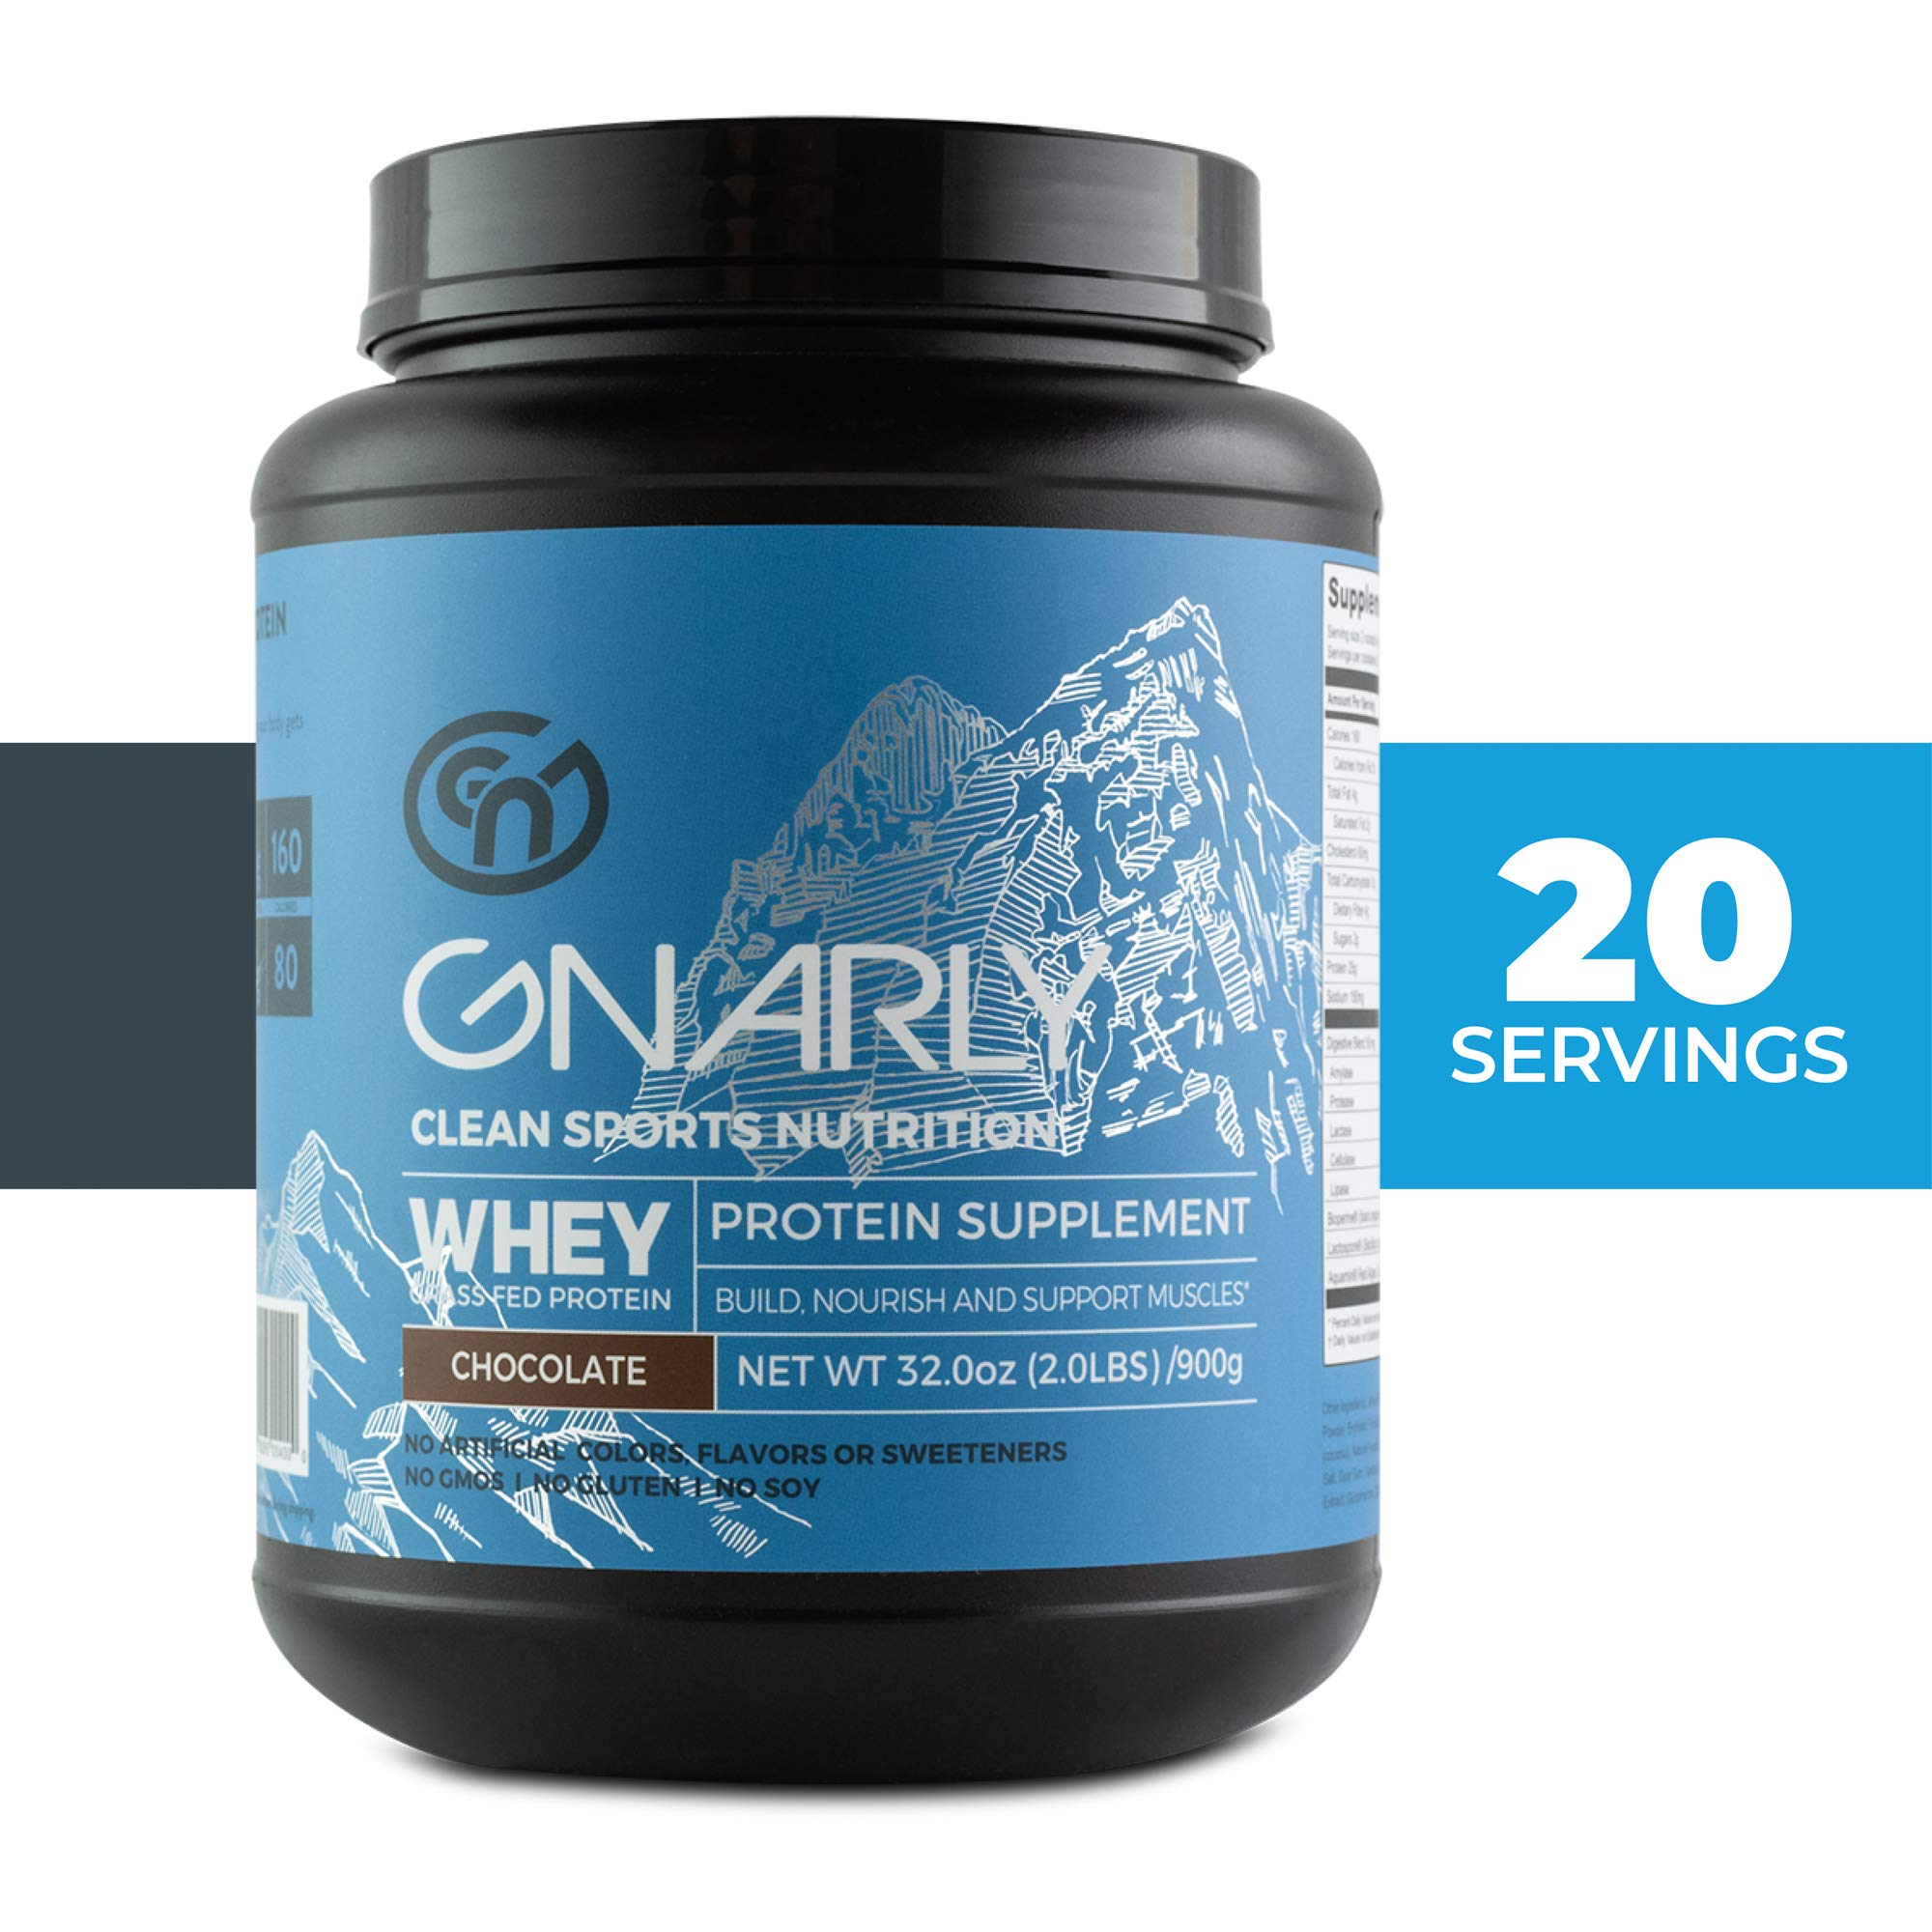 Gnarly Nutrition, Whey Protein Derived from Non-rBGH New Zealand Grass-Fed Cows for Muscle Synthesis, Chocolate, 32 Oz (20 Servings) by Gnarly Nutrition